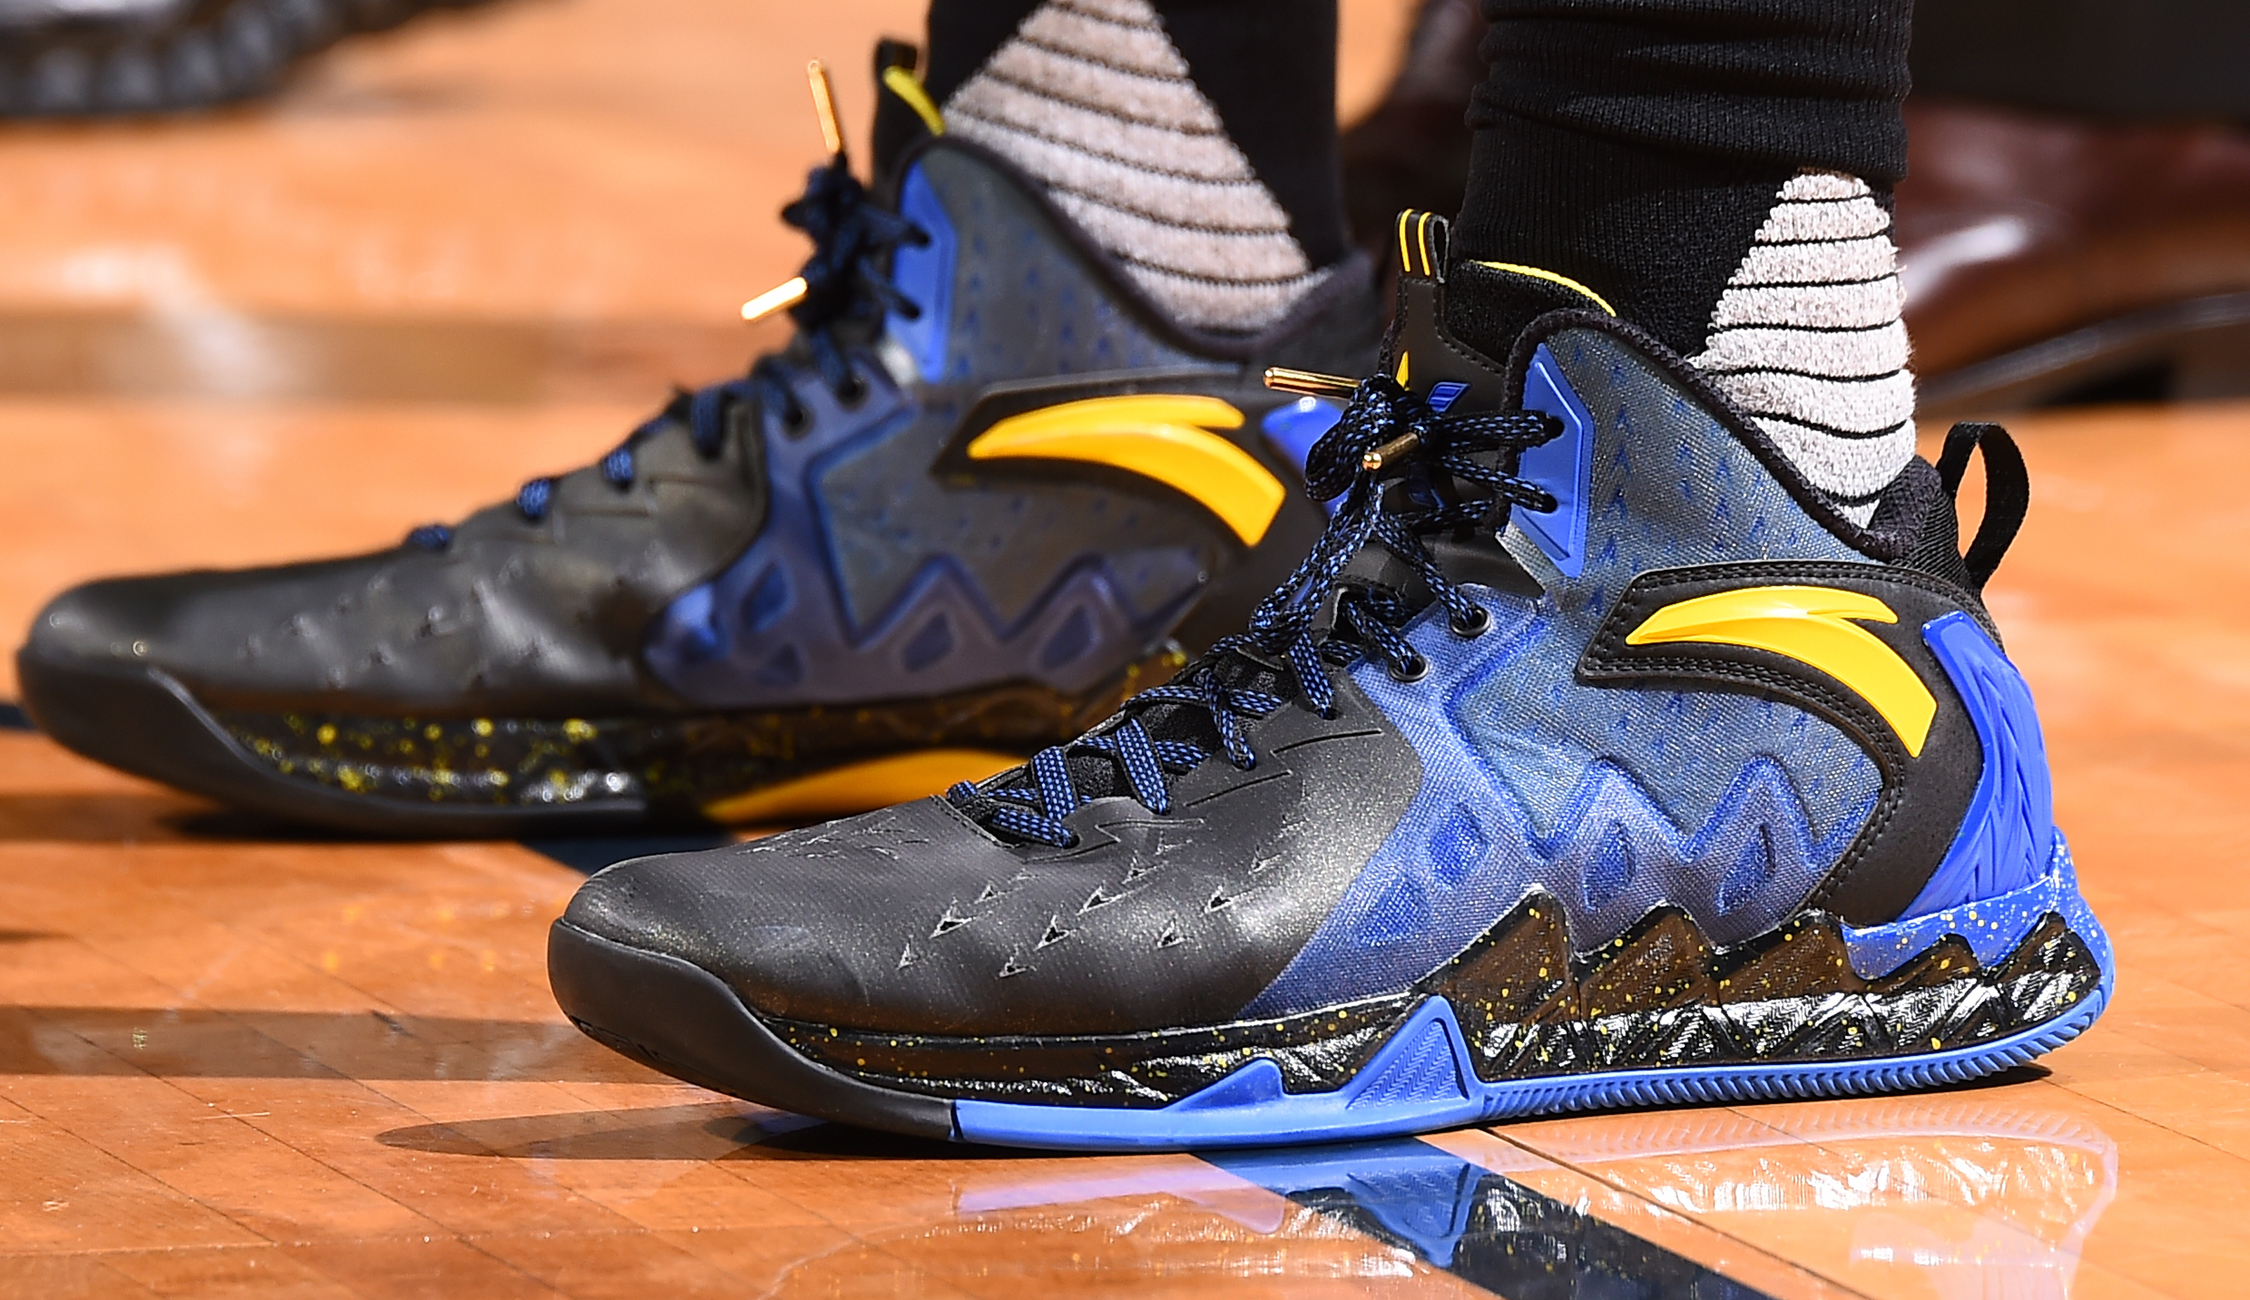 Anta KT2 worn by Klay Thompson